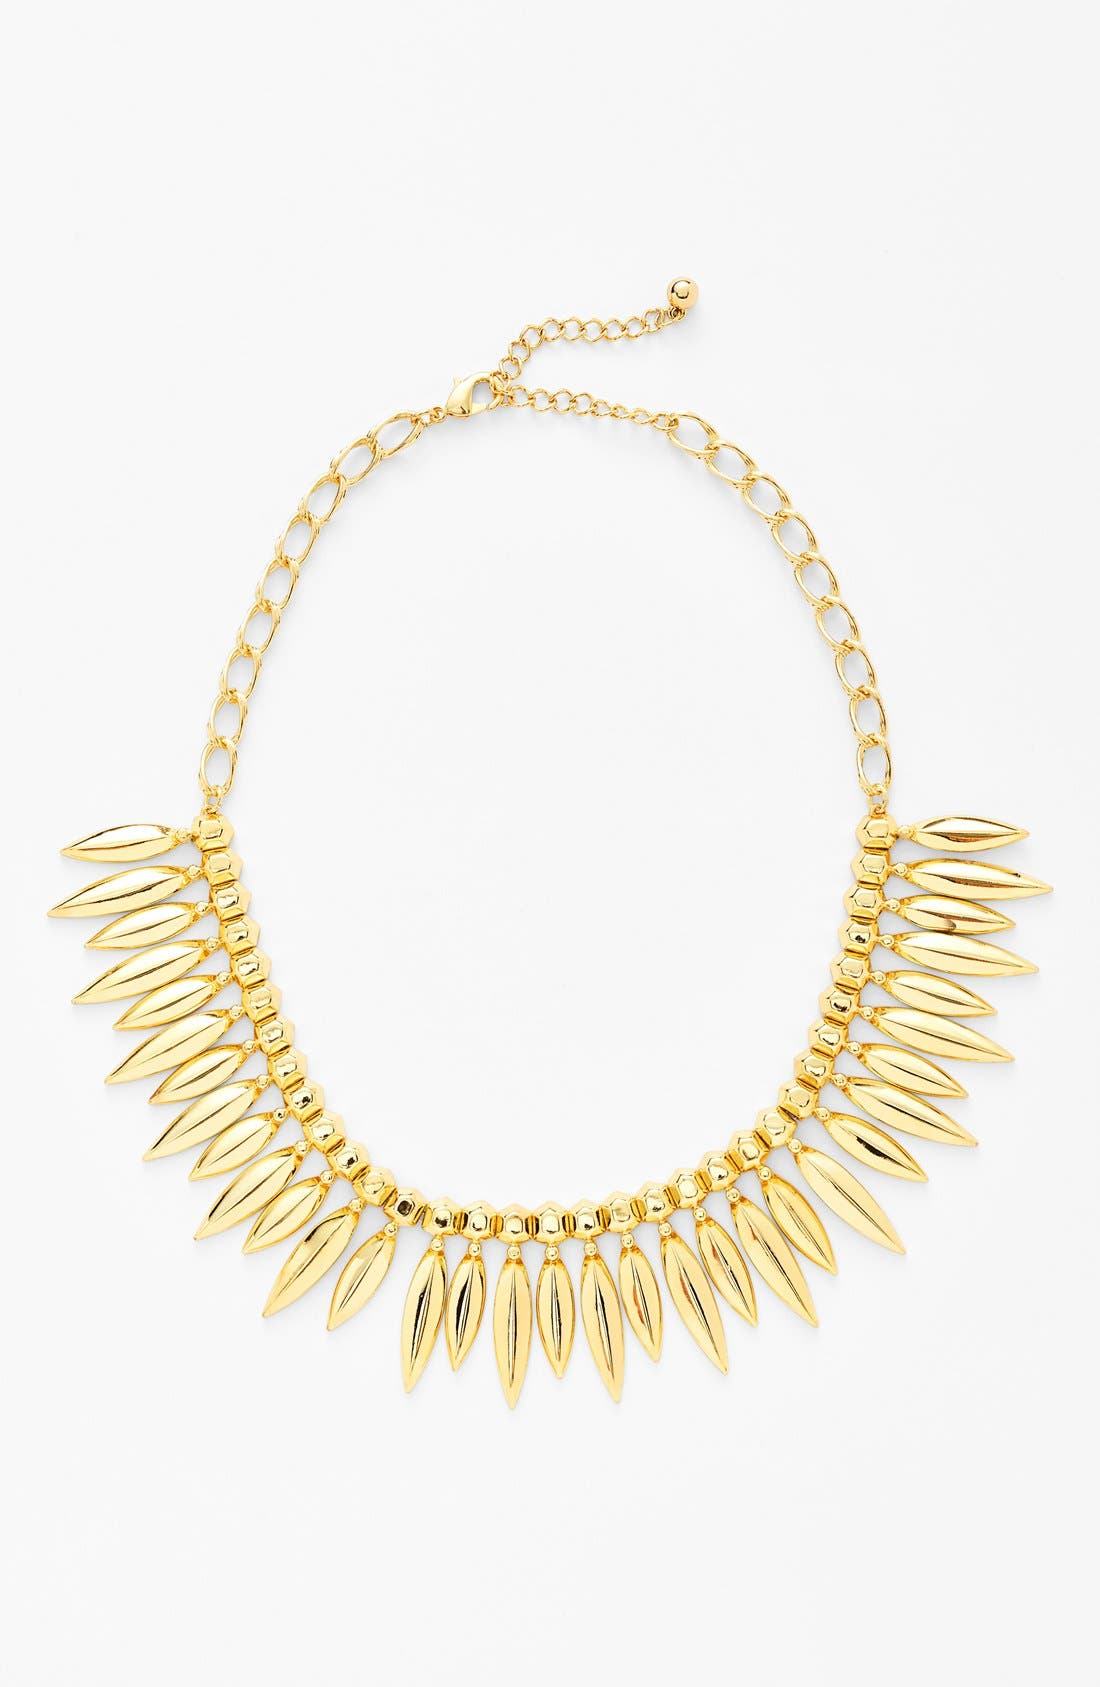 Alternate Image 1 Selected - Jules Smith Spiked Statement Necklace